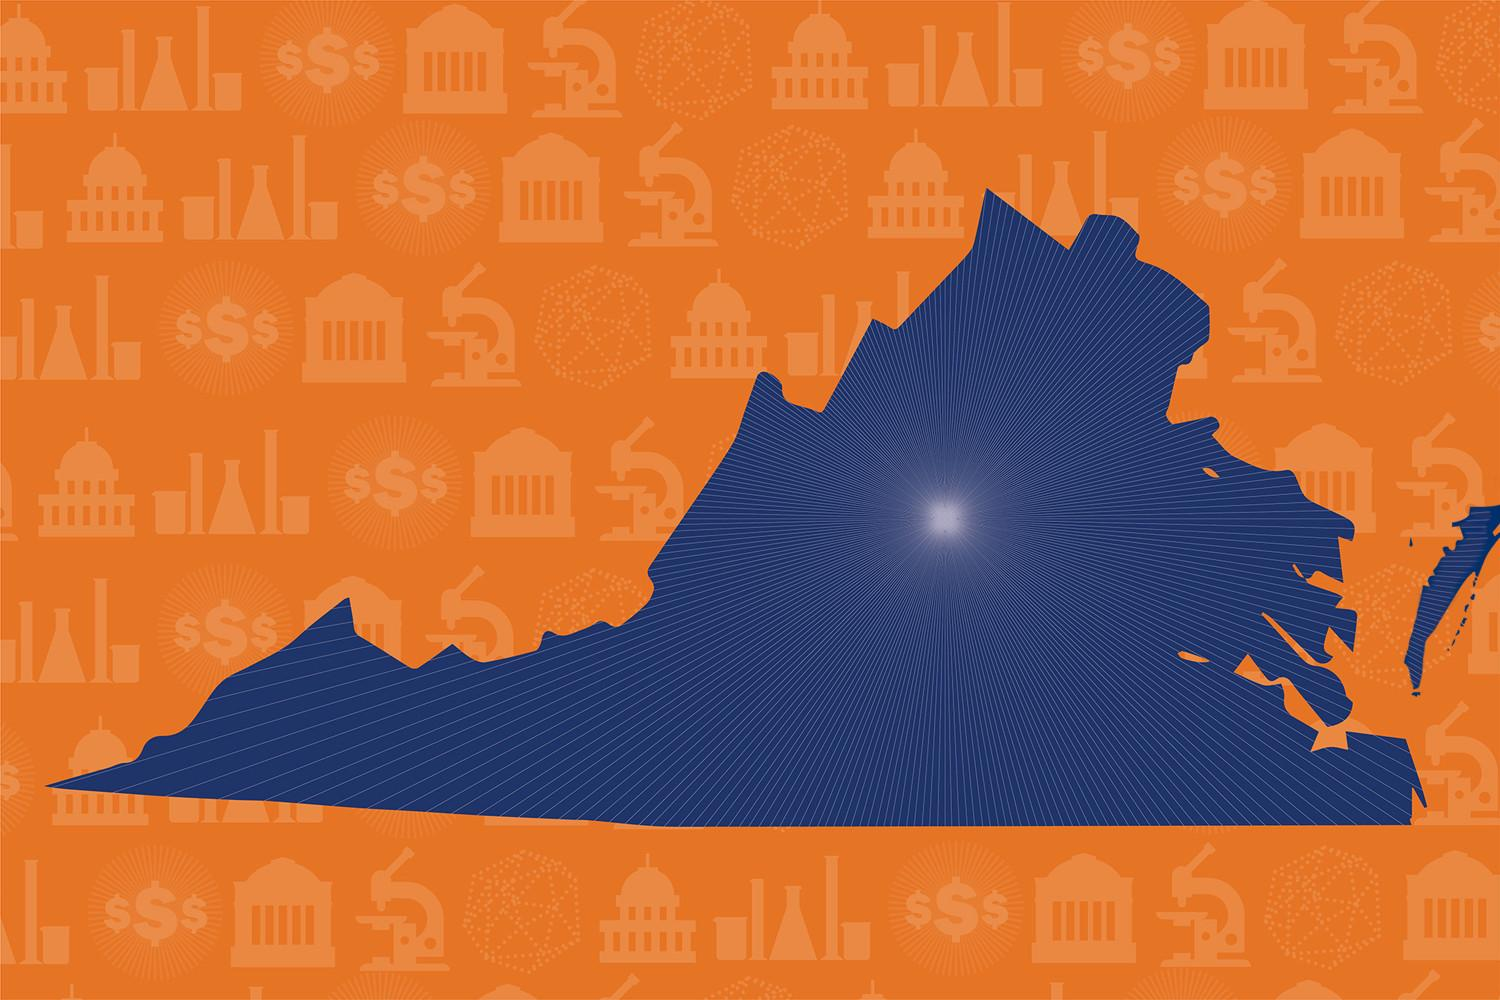 According to an independent study, UVA directly provides or indirectly supports one in every 76 jobs in Virginia.